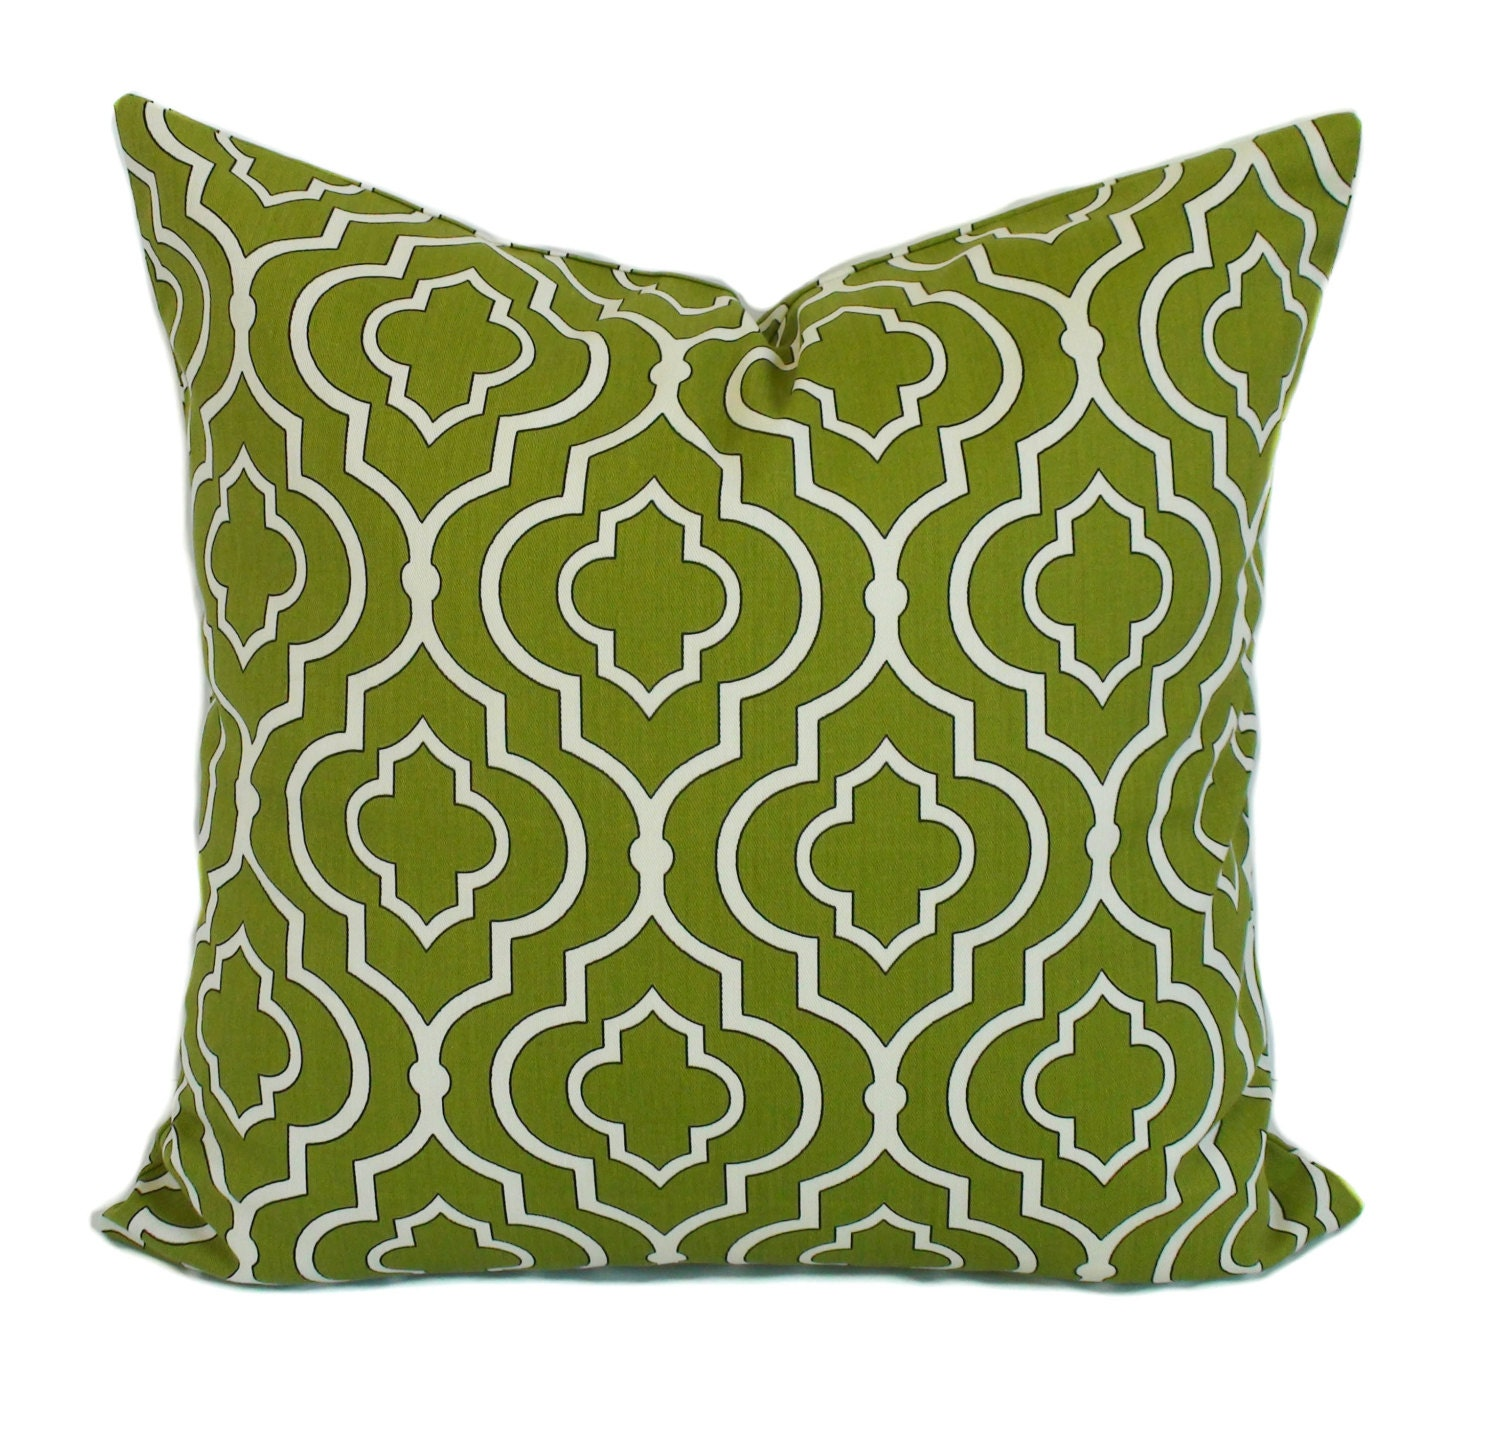 Decorative Pillows For Bed Green : Green pillow covers Throw pillows Toss pillow by PillowCorner